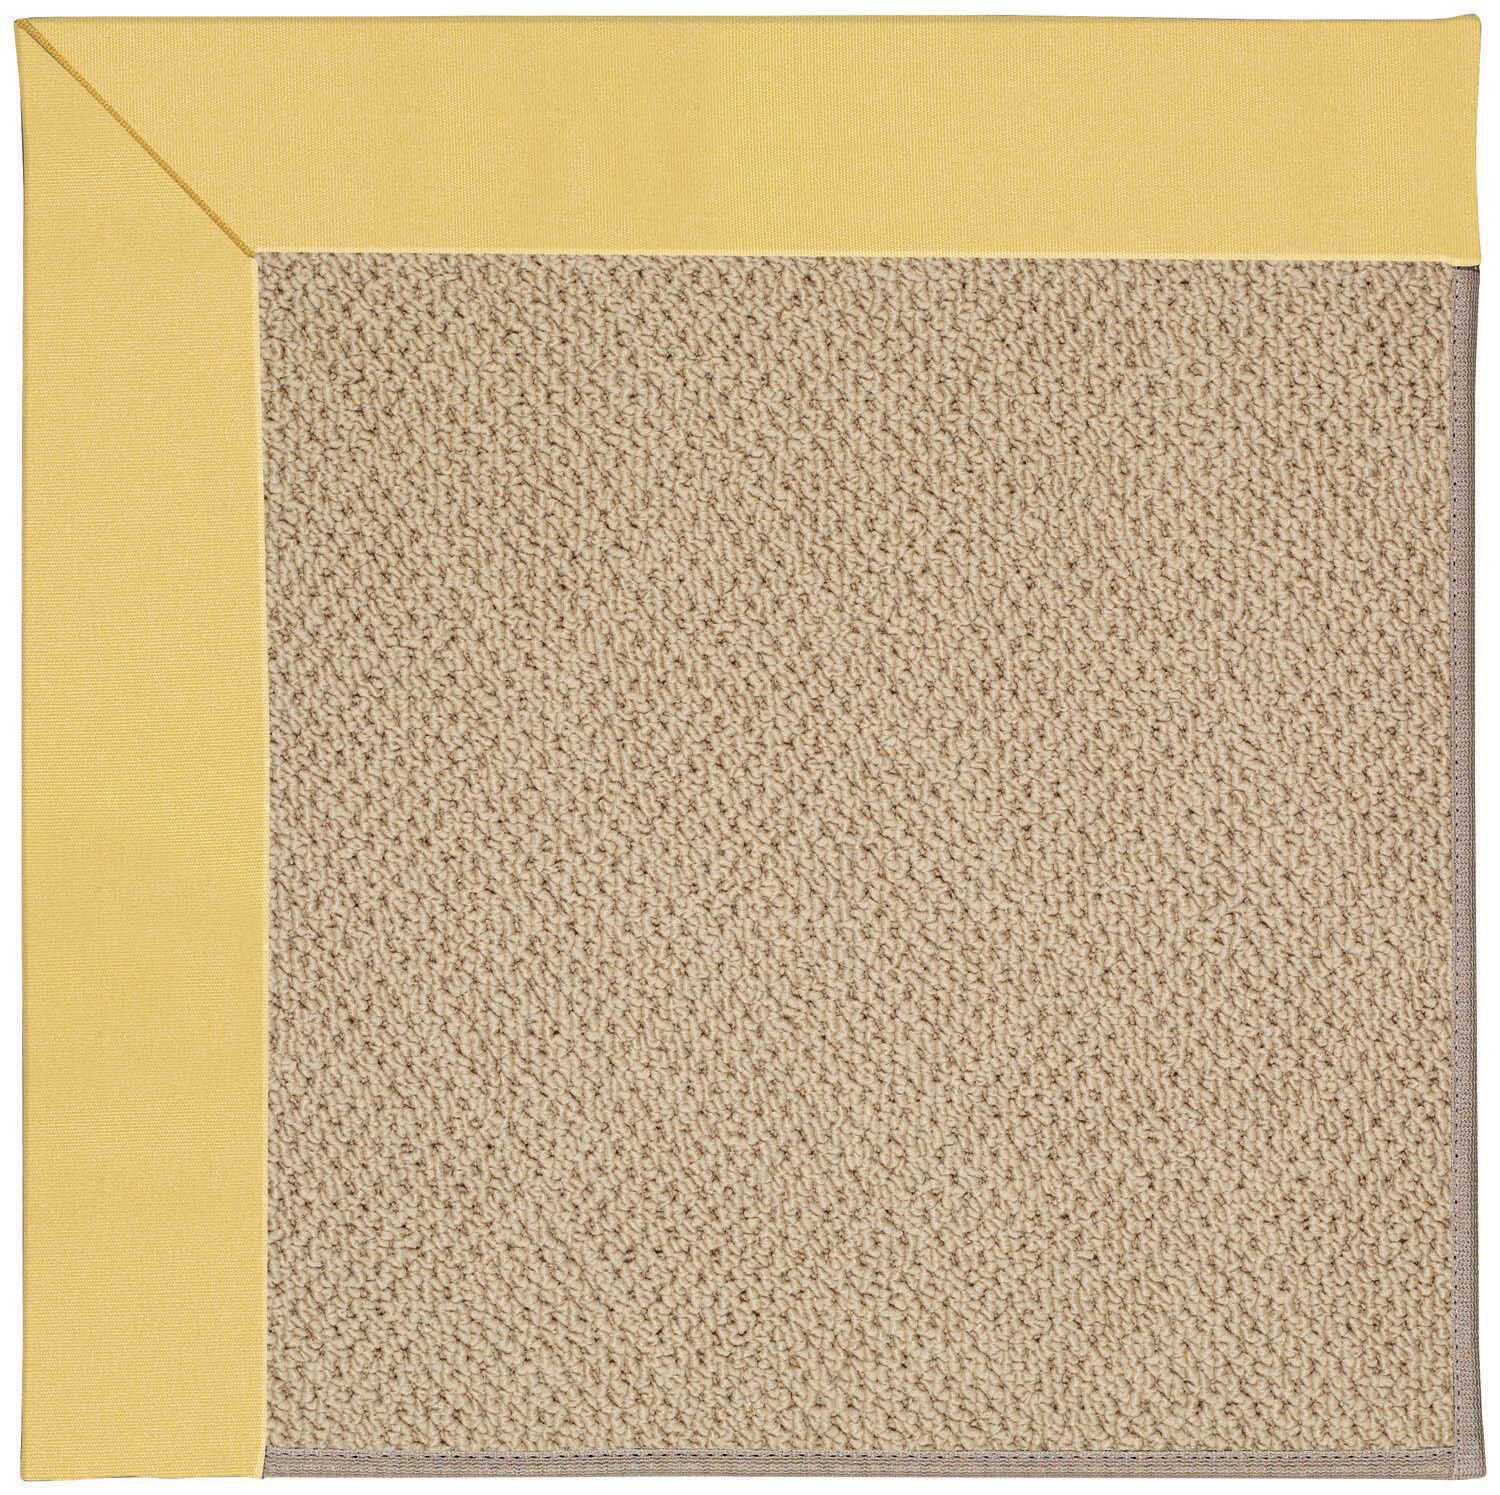 Lisle Machine Tufted Lemon and Beige Indoor/Outdoor Area Rug Rug Size: Rectangle 8' x 10'